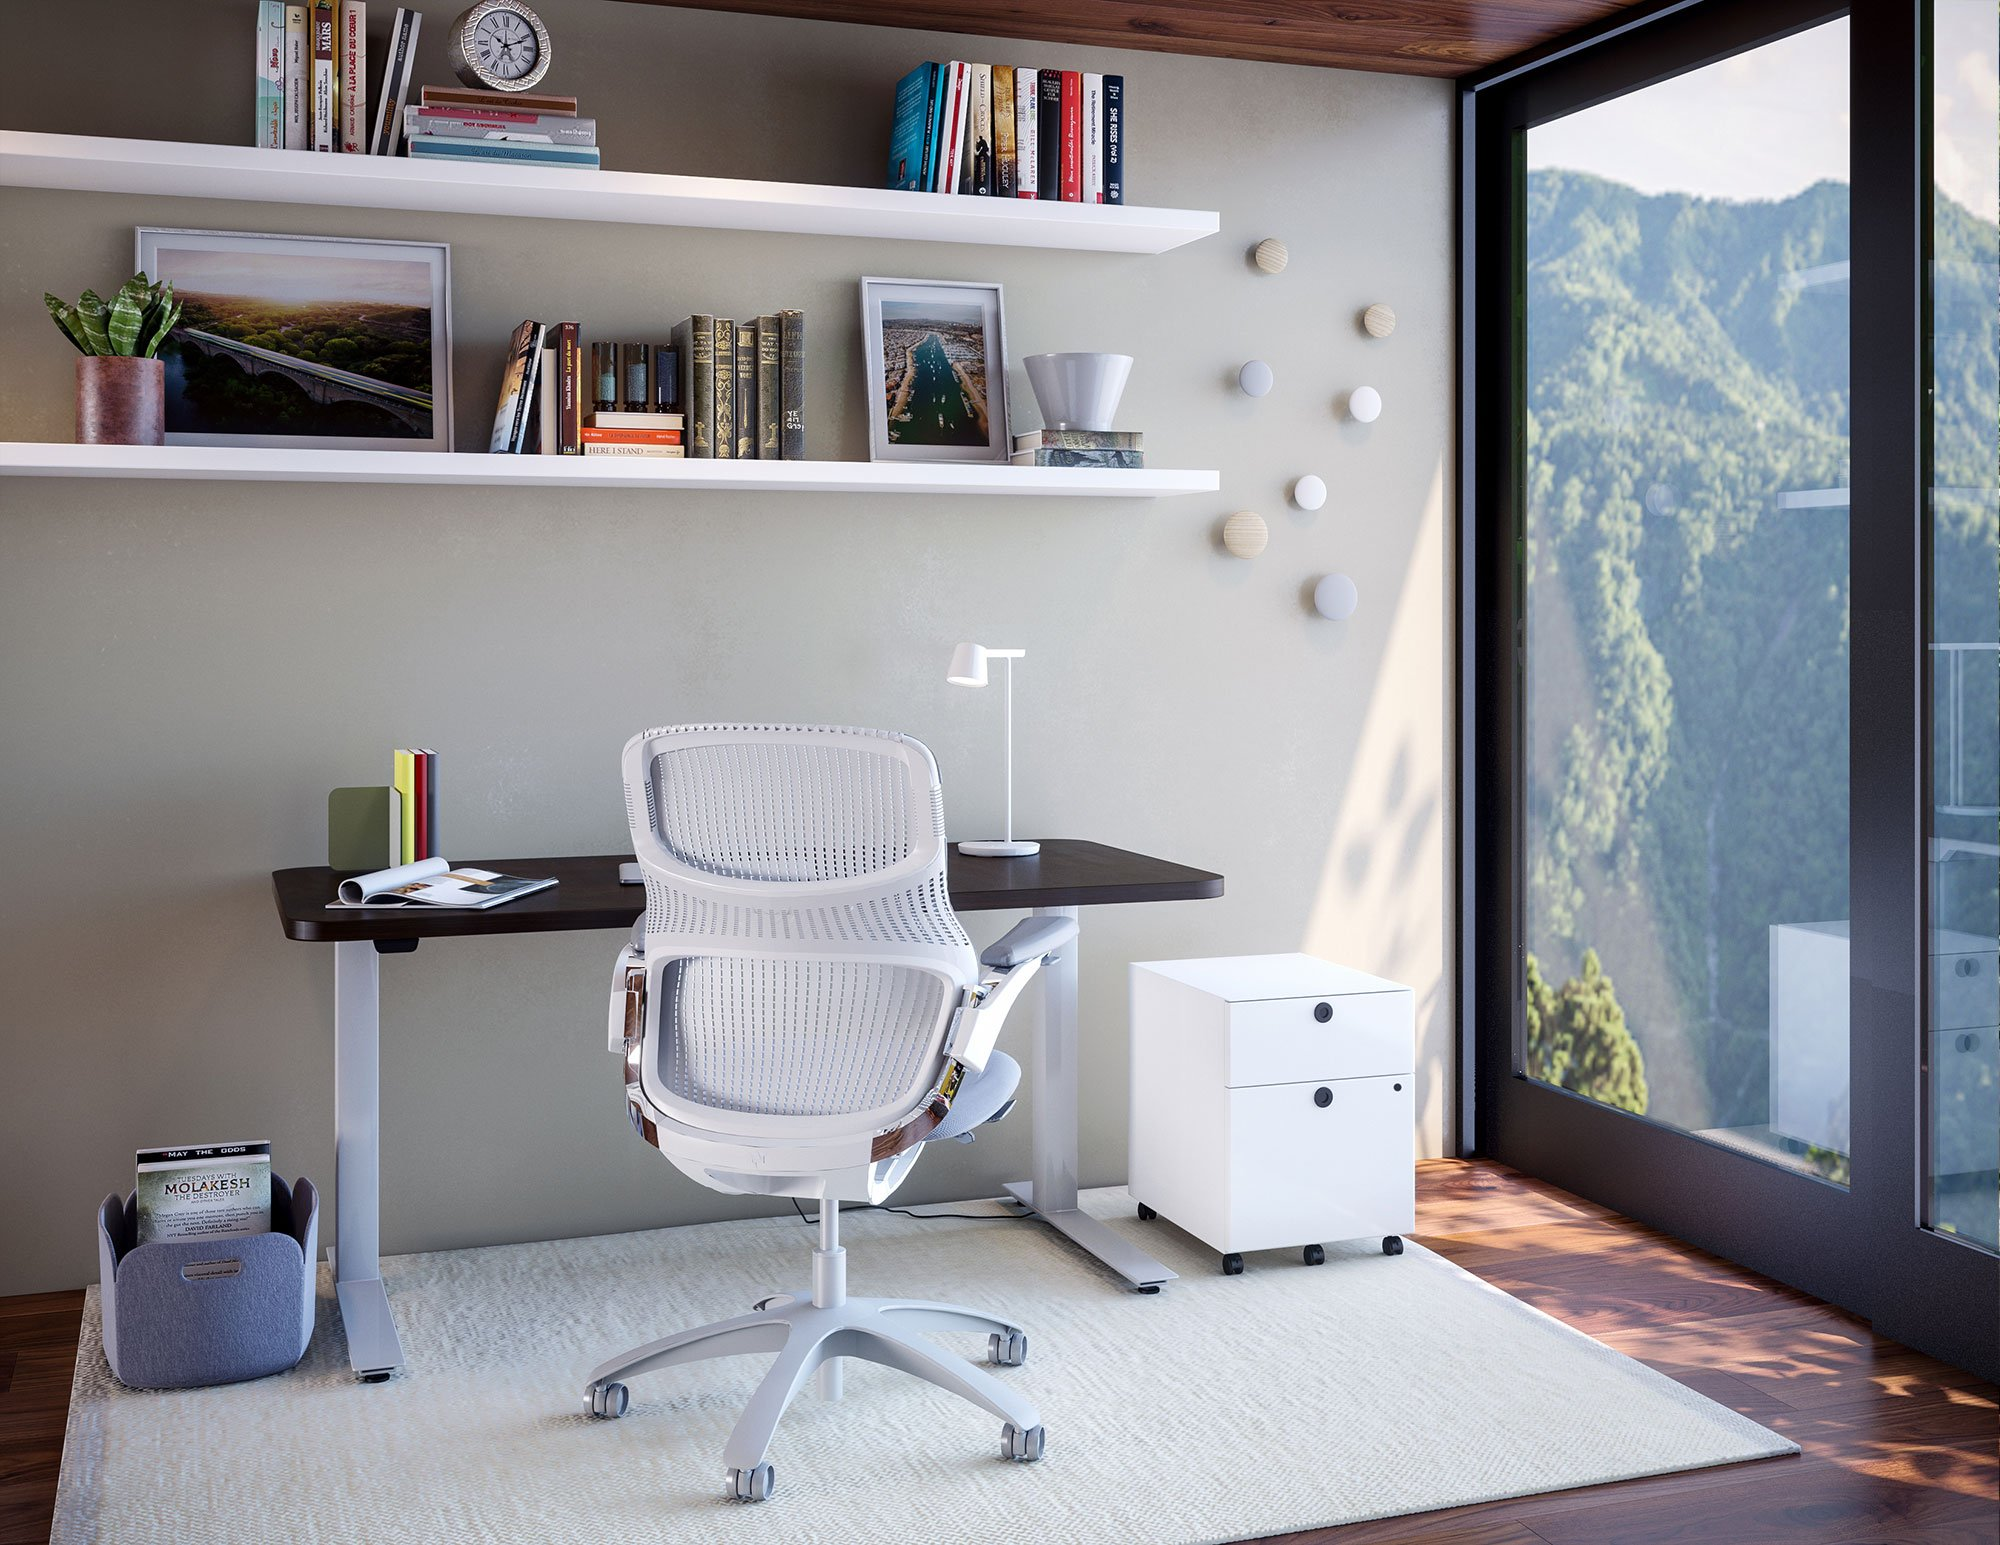 Hipso Height-Adjustable Desk with Generation by Knoll and Muuto accessrories. Work from Home Inspiration from Knoll and Muuto